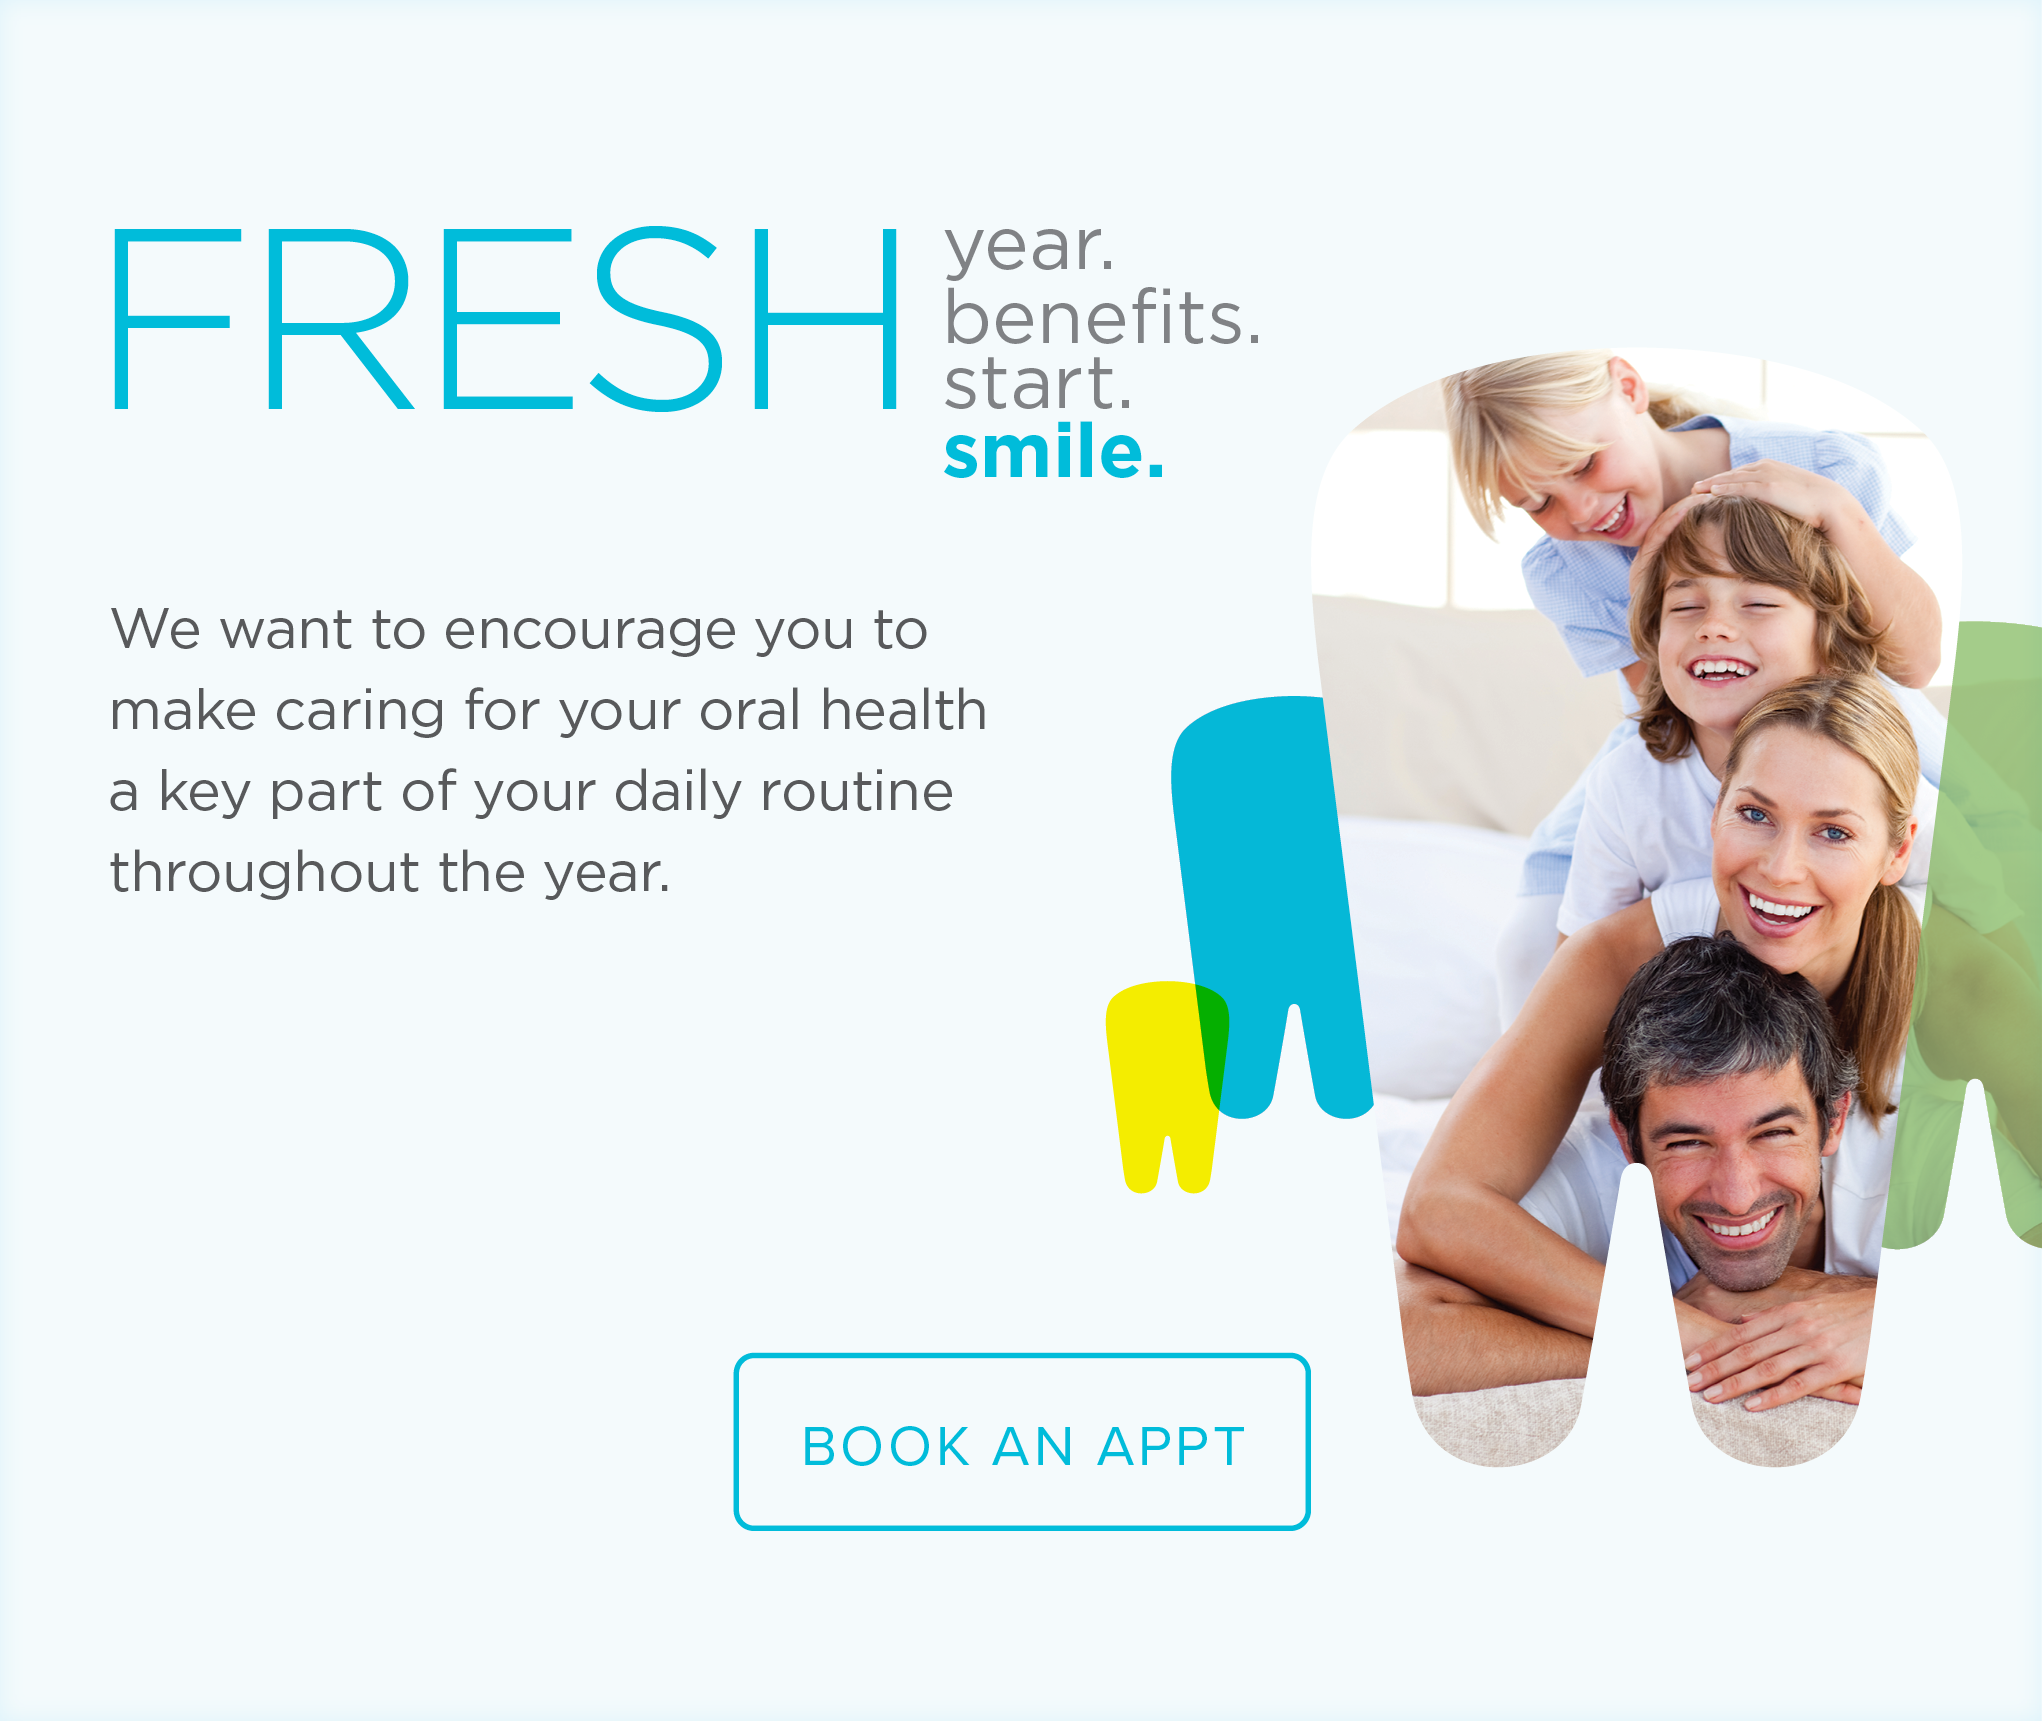 Santee Town Center Dental Group and Orthodontics - Make the Most of Your Benefits